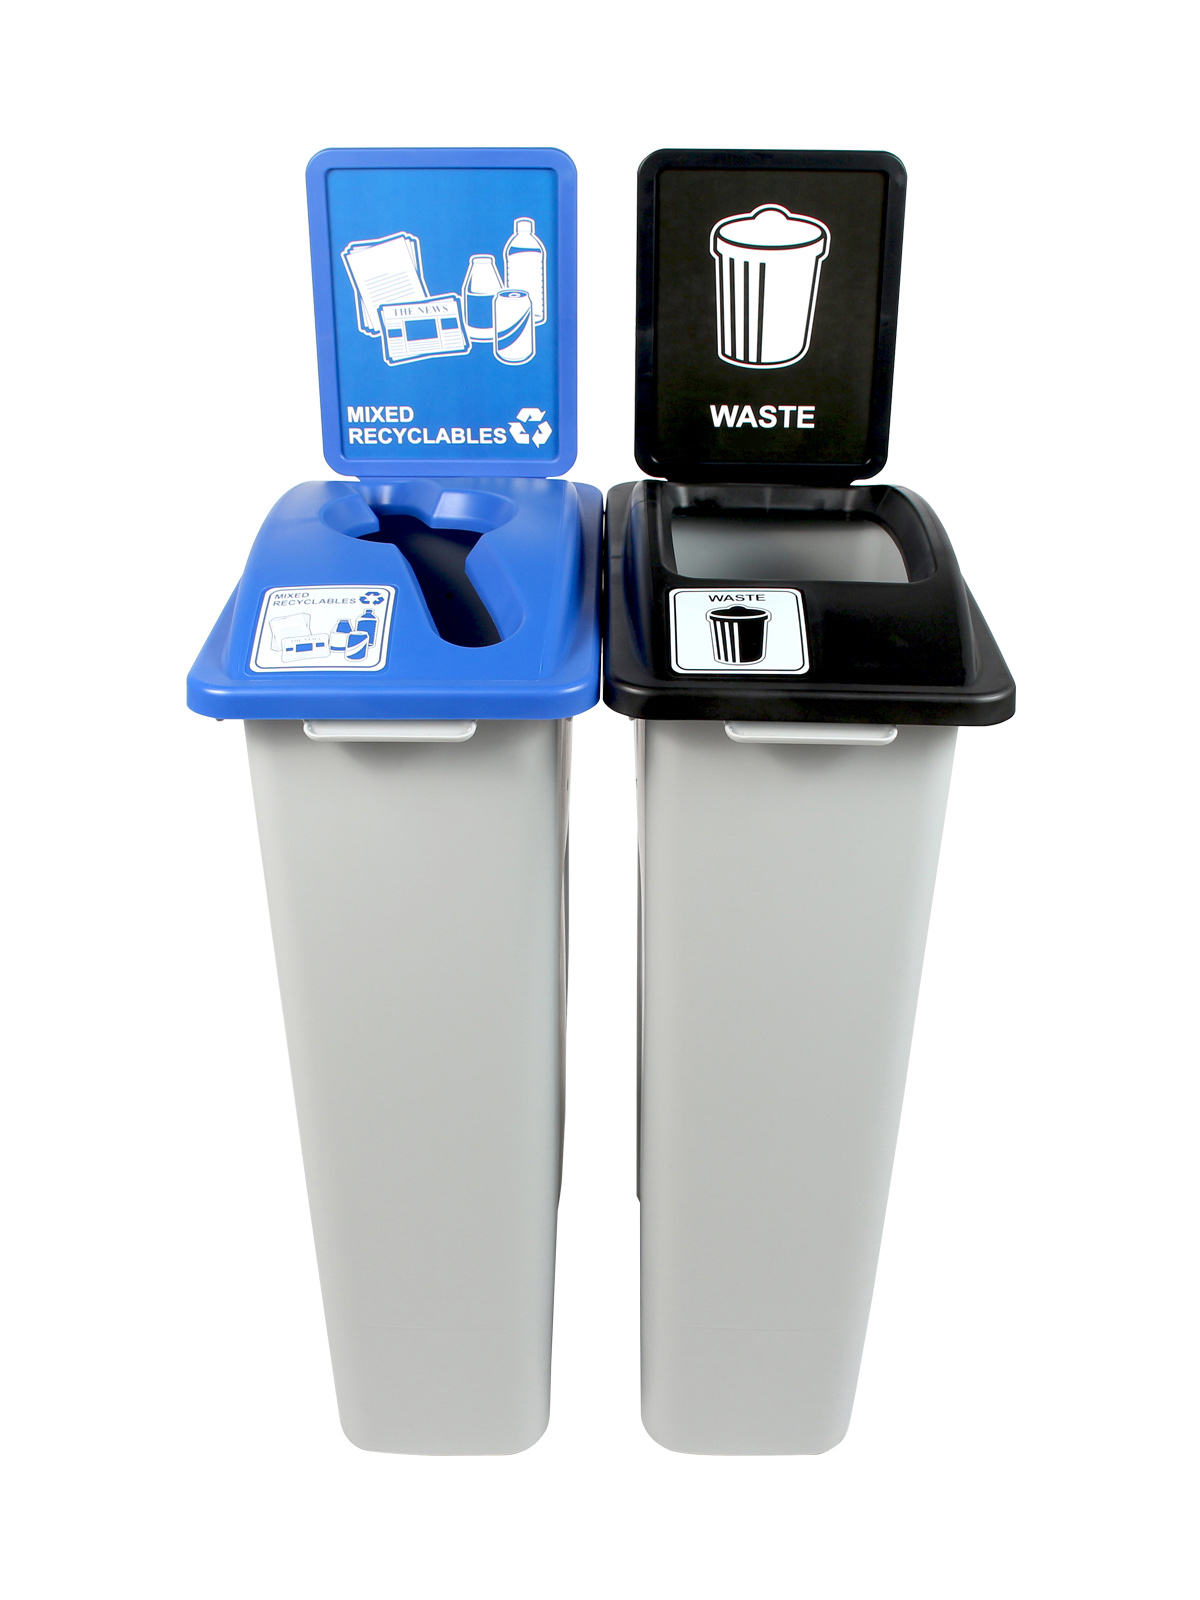 WASTE WATCHER - Double - Rhode Island Compliant - Mixed Recyclables-Waste - Mixed-Full - Grey-Blue-Black title=